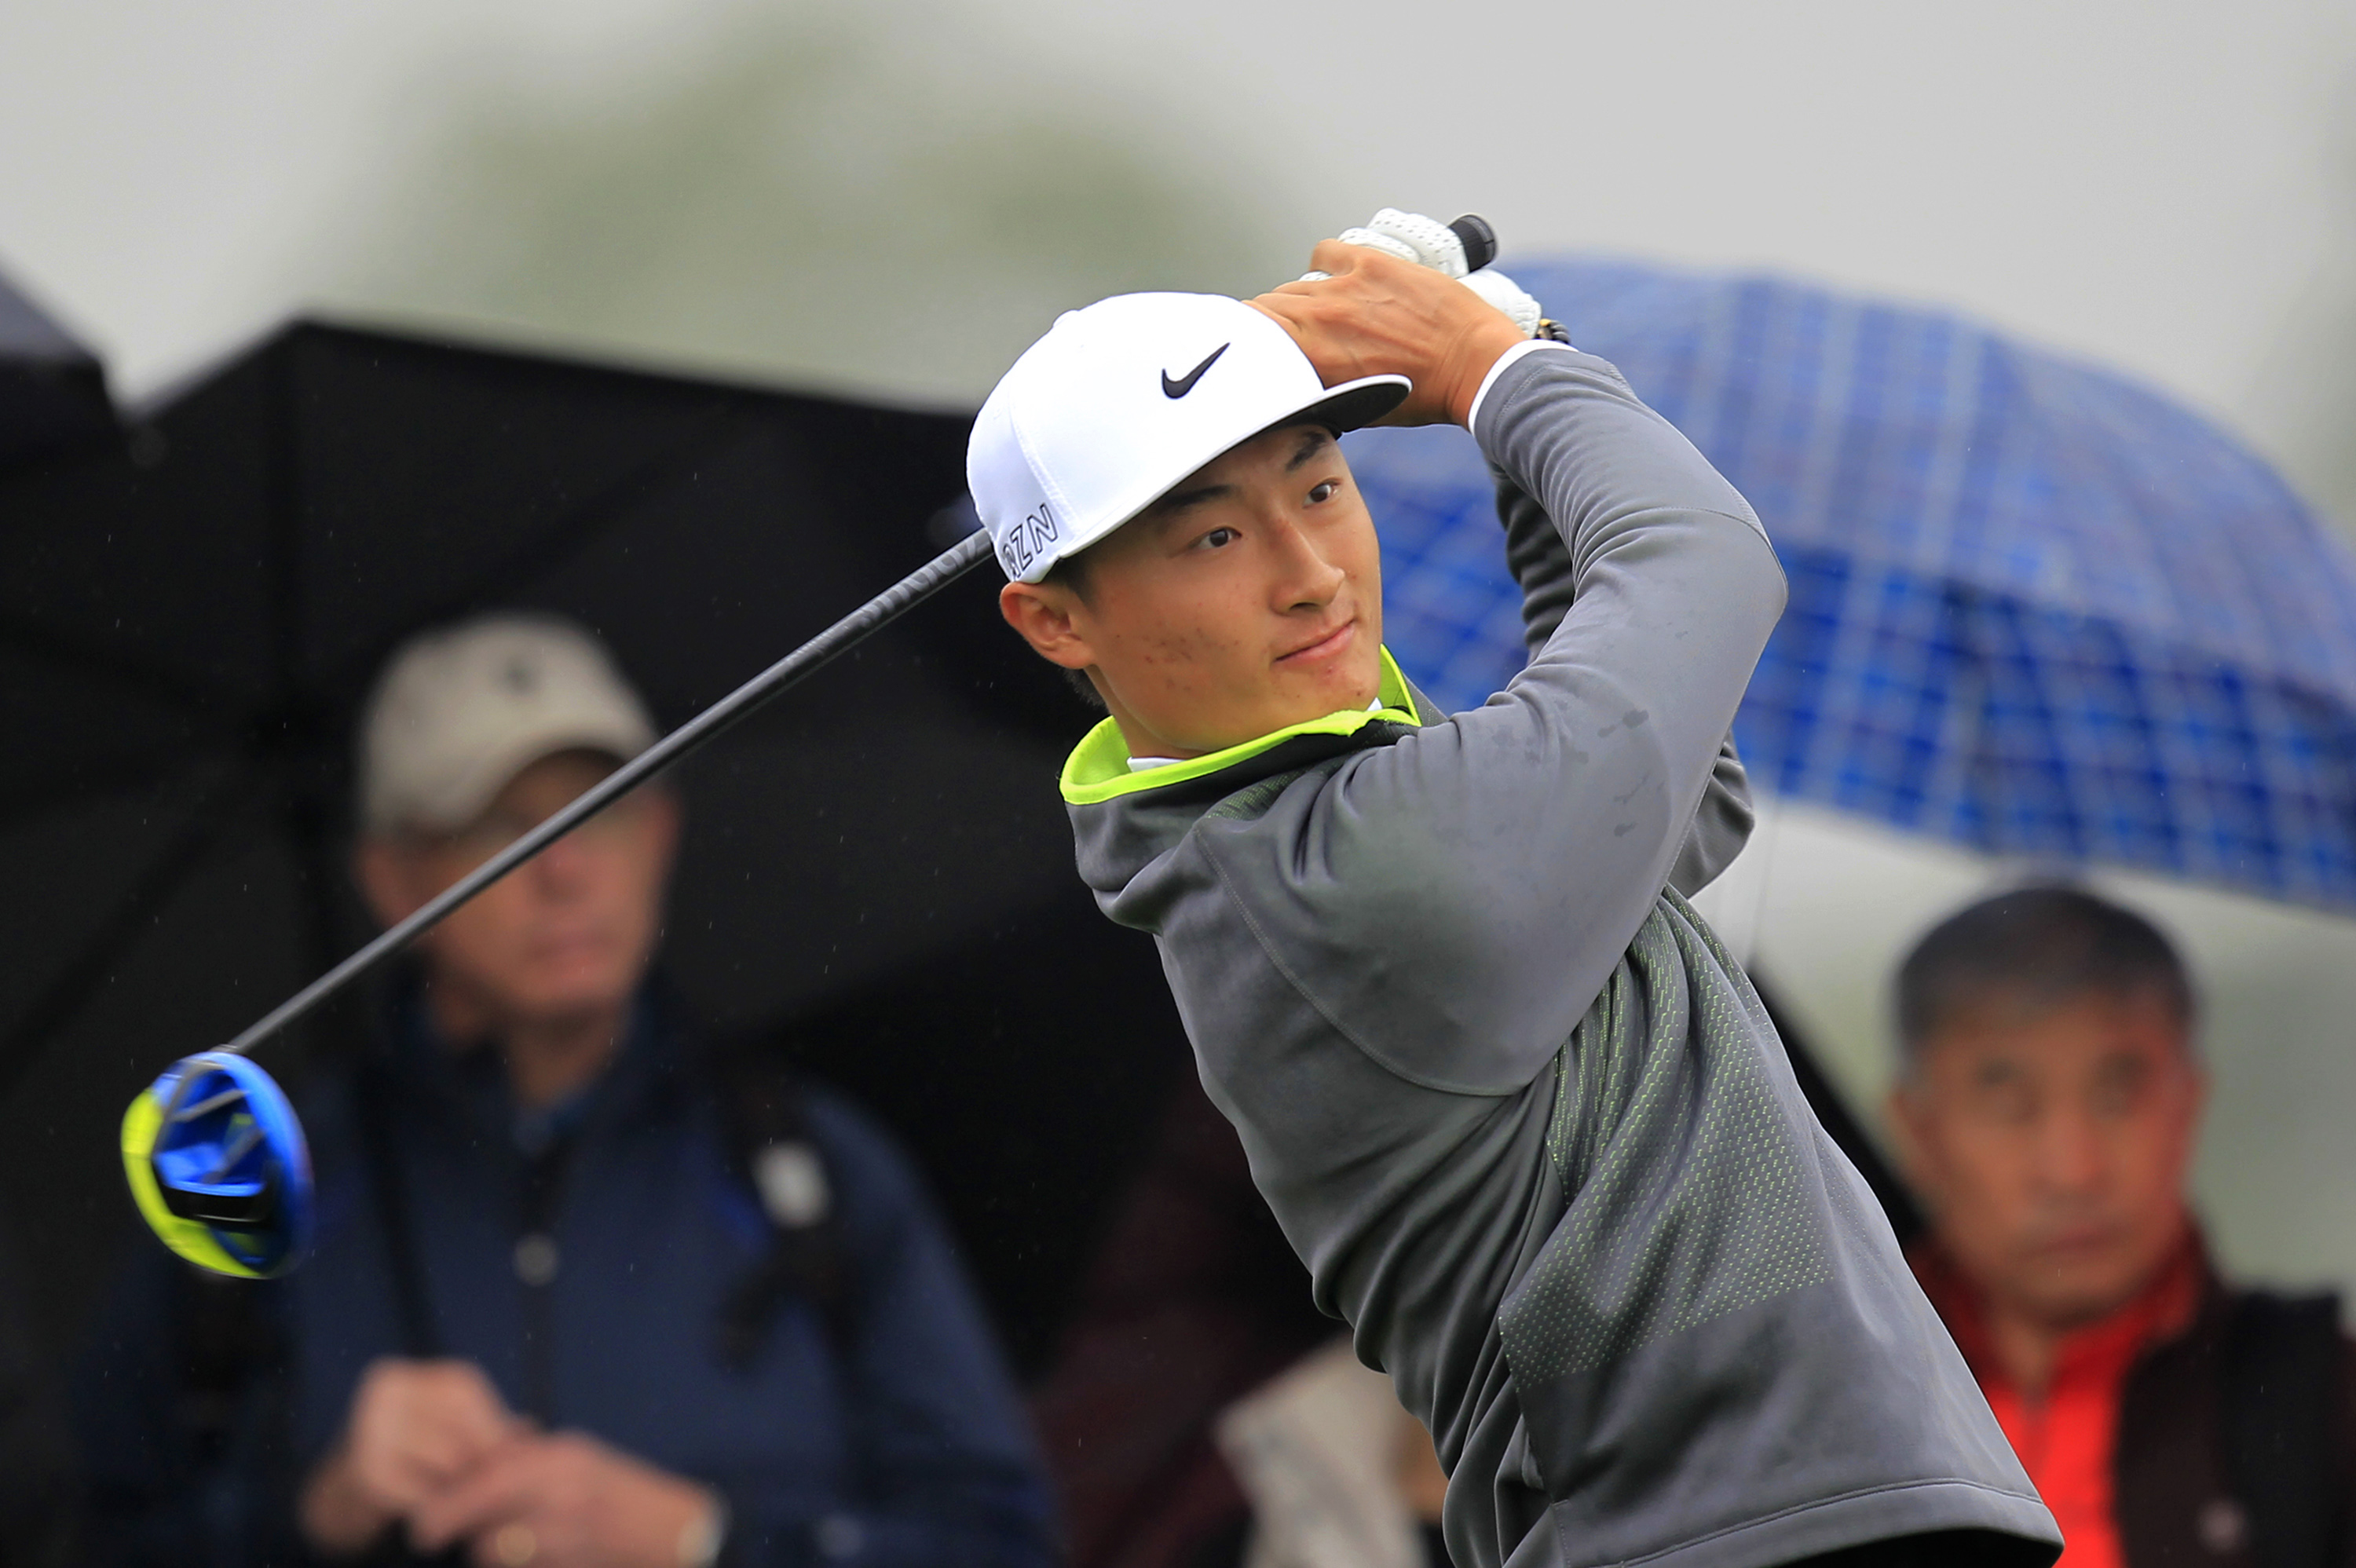 Li Haotong of China tees off on the 15th hole during the first round of the BMW Masters golf tournament at the Lake Malaren Golf Club in Shanghai, China Thursday, Nov. 12, 2015. (AP Photo)